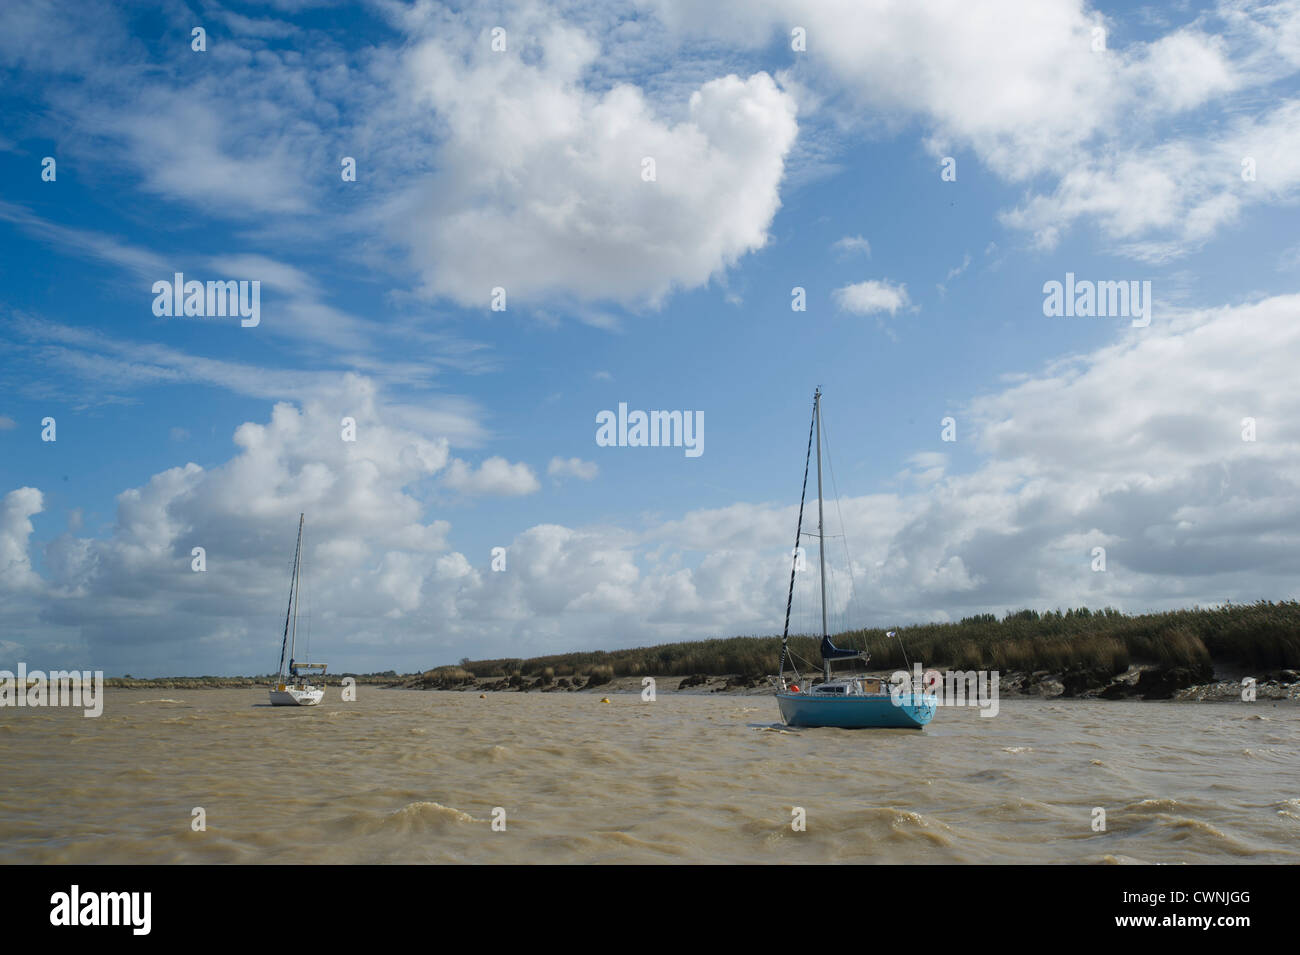 Anchorage on Charente river - Stock Image